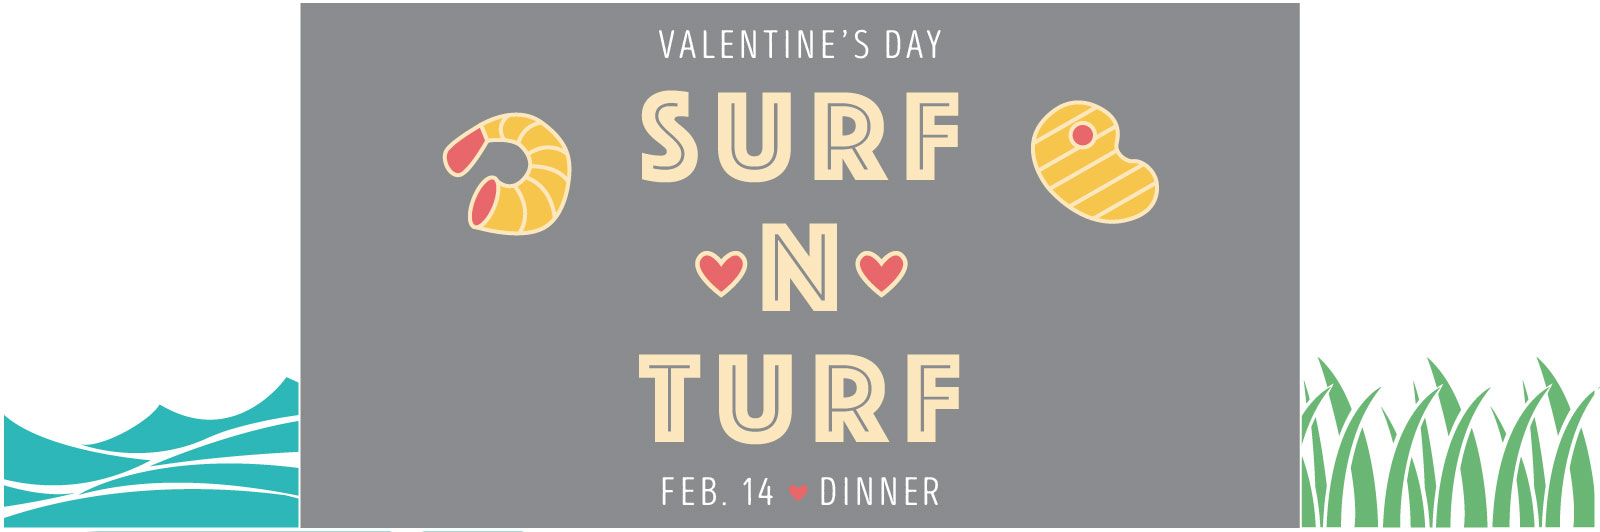 Valentine's Day Surf N' Turf Dinner, Feb. 14th at Dinner